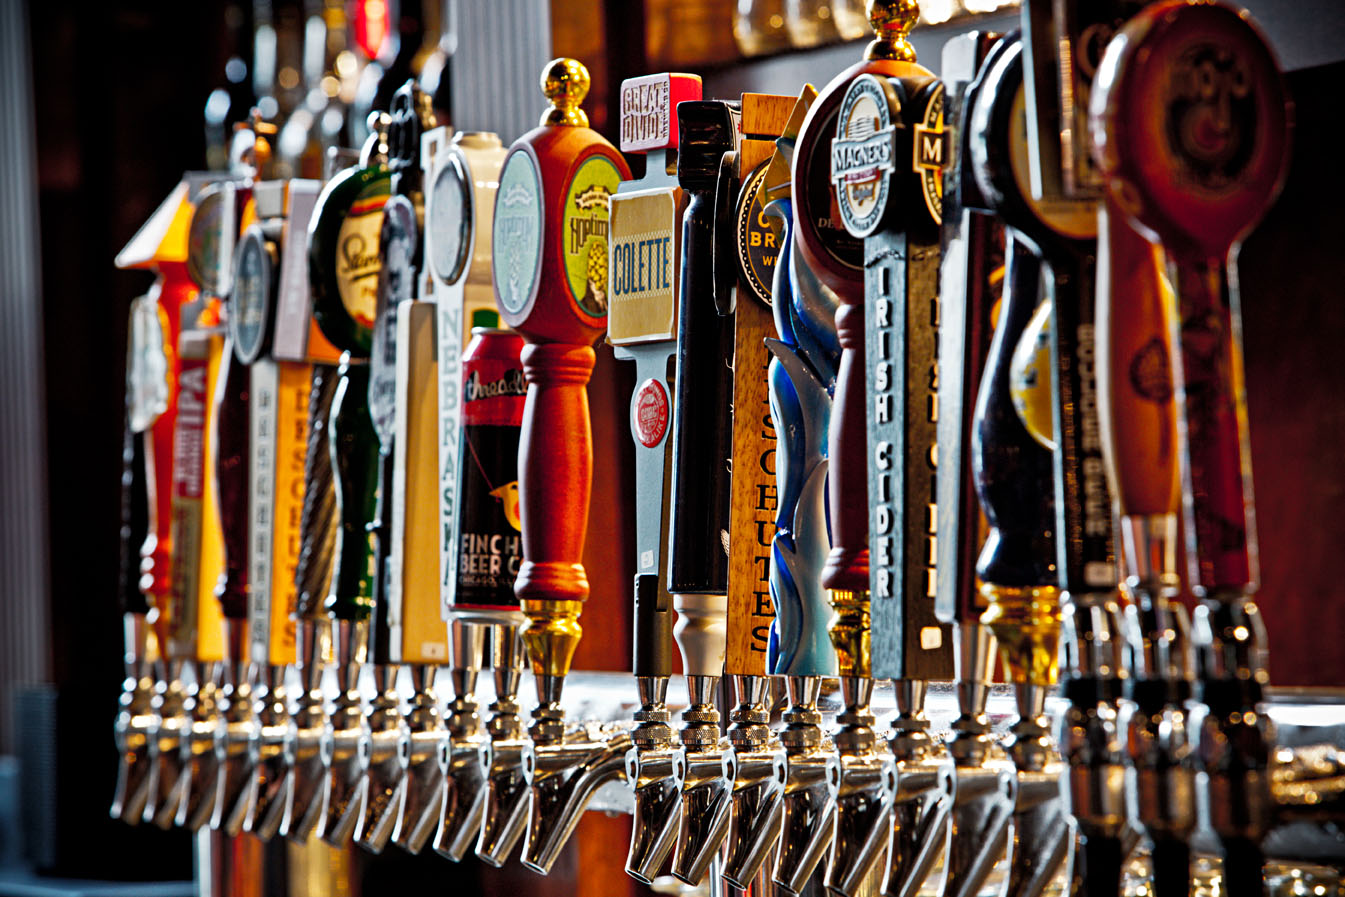 Wilson and Washburn has 24 beers on tap.